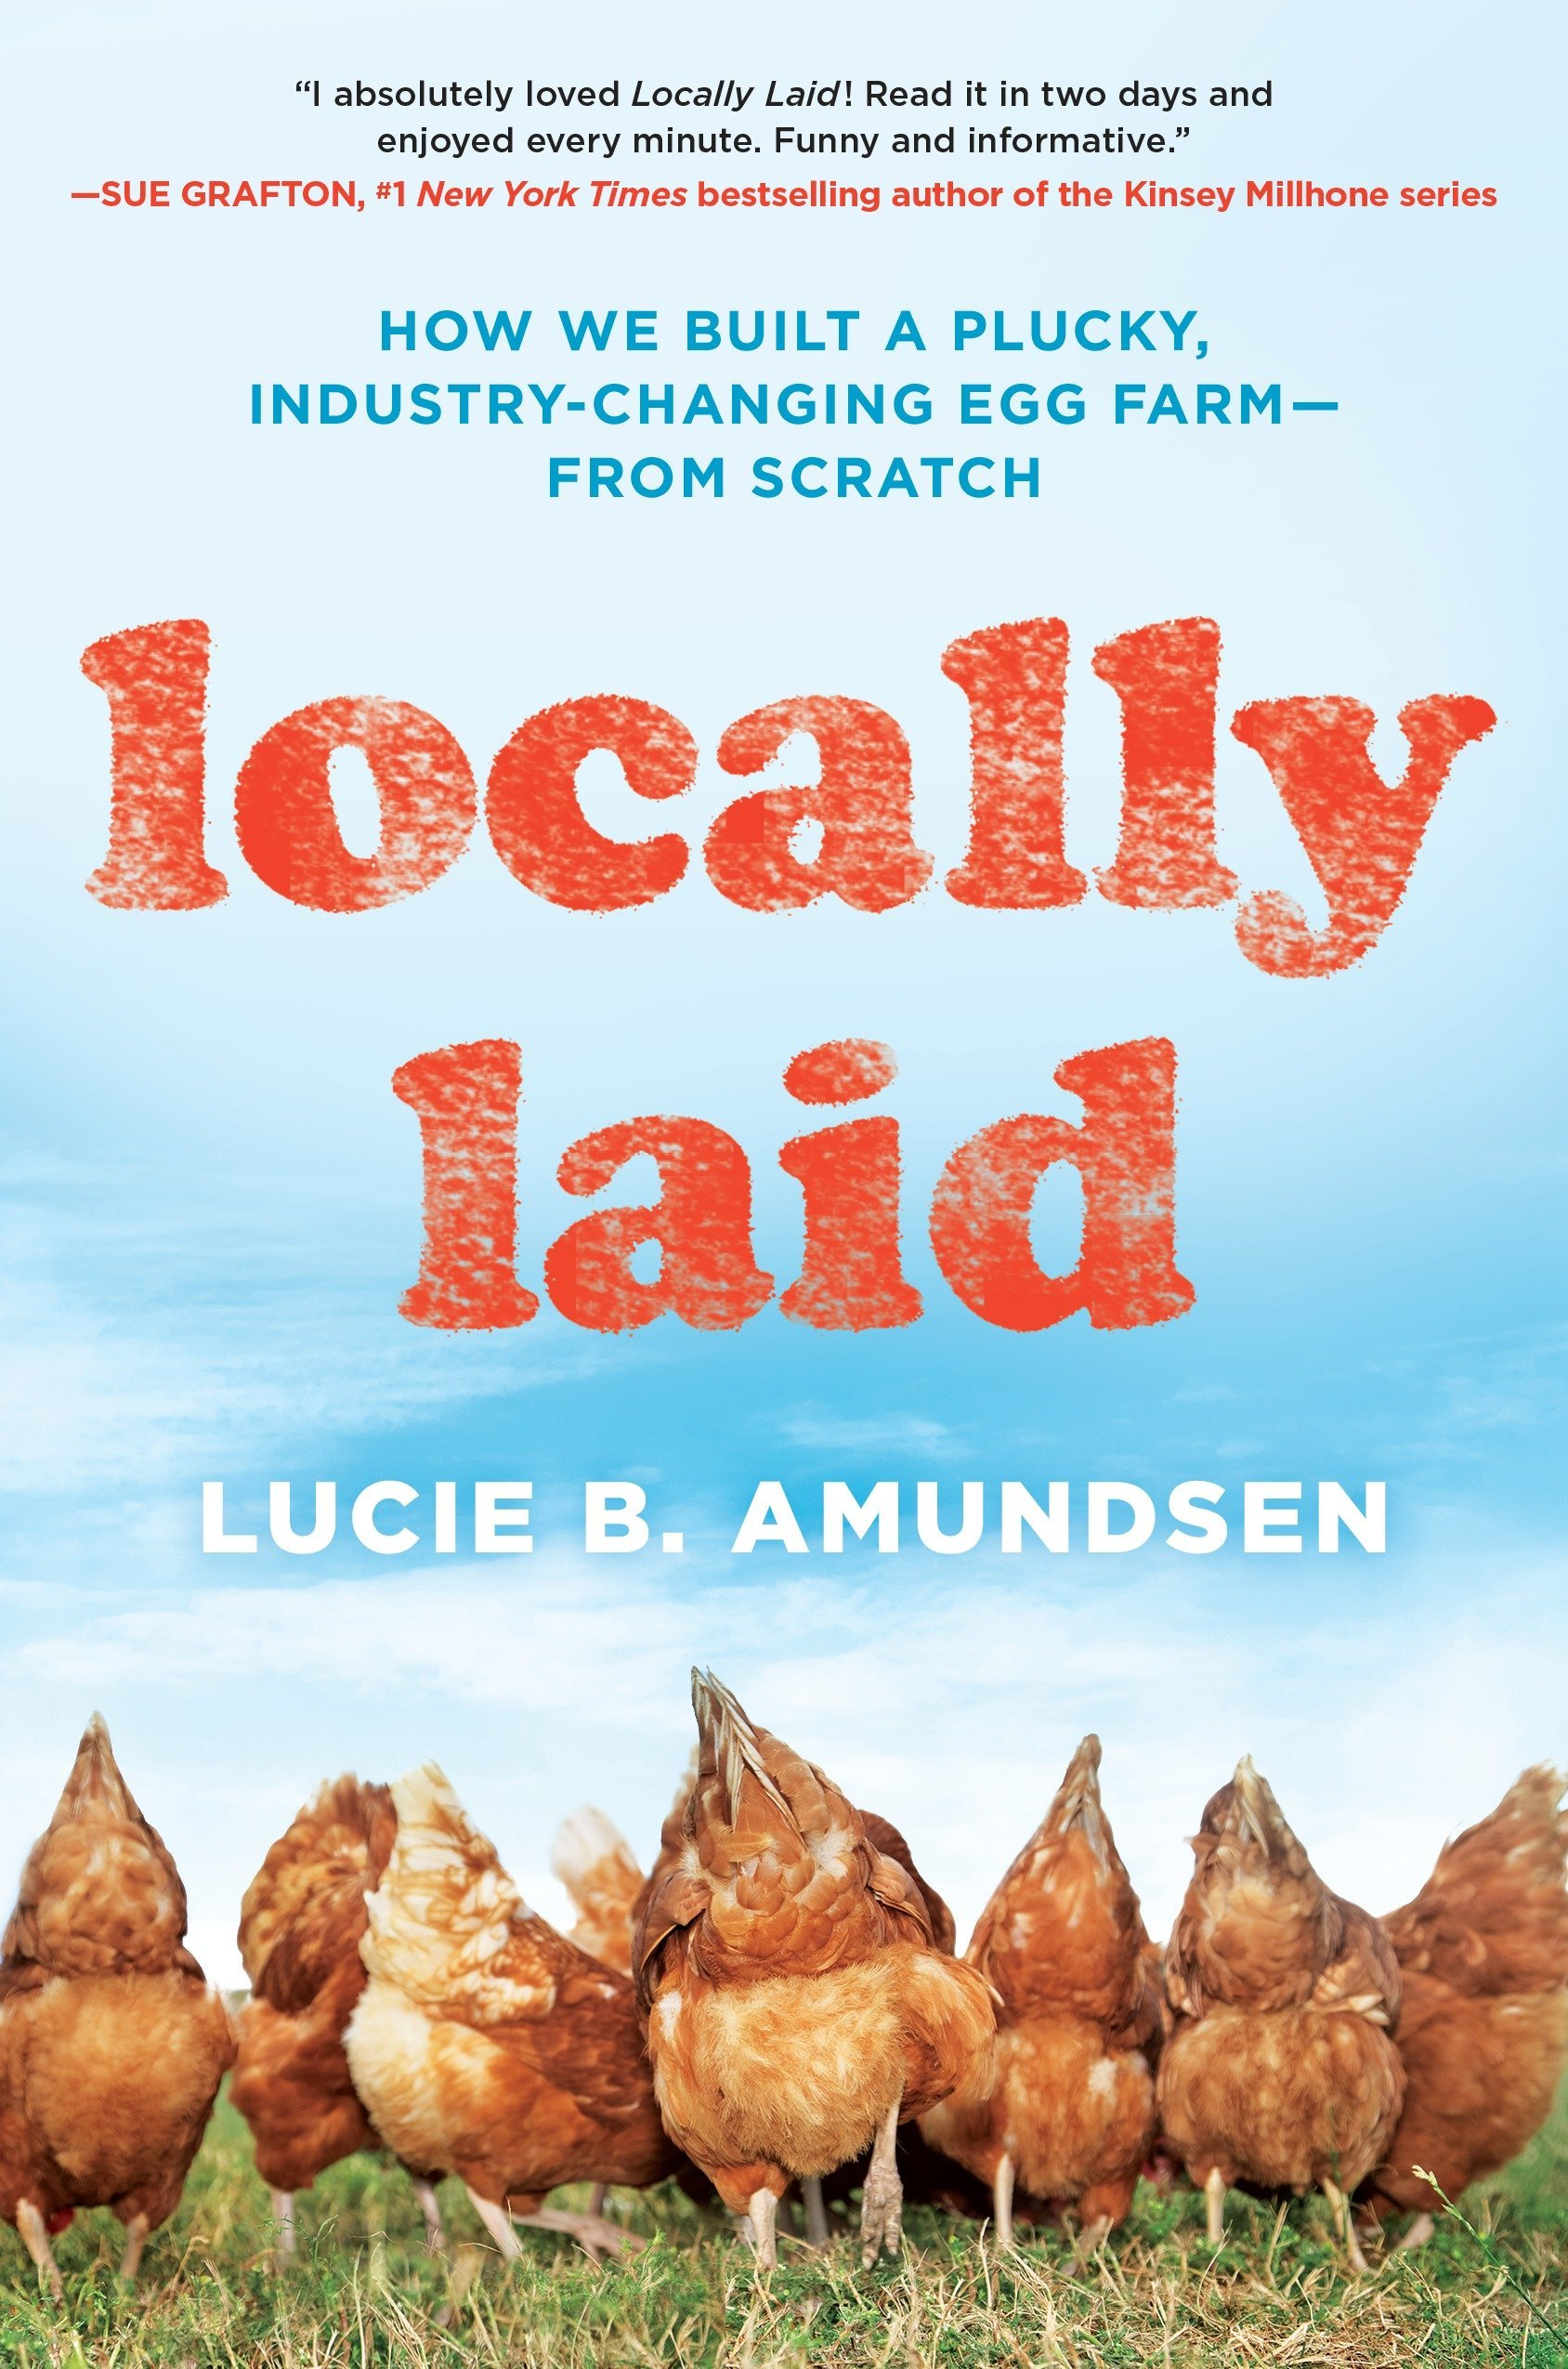 Locally Laid: How We Built a Plucky, Industry-changing Egg Farm - from Scratch PDF